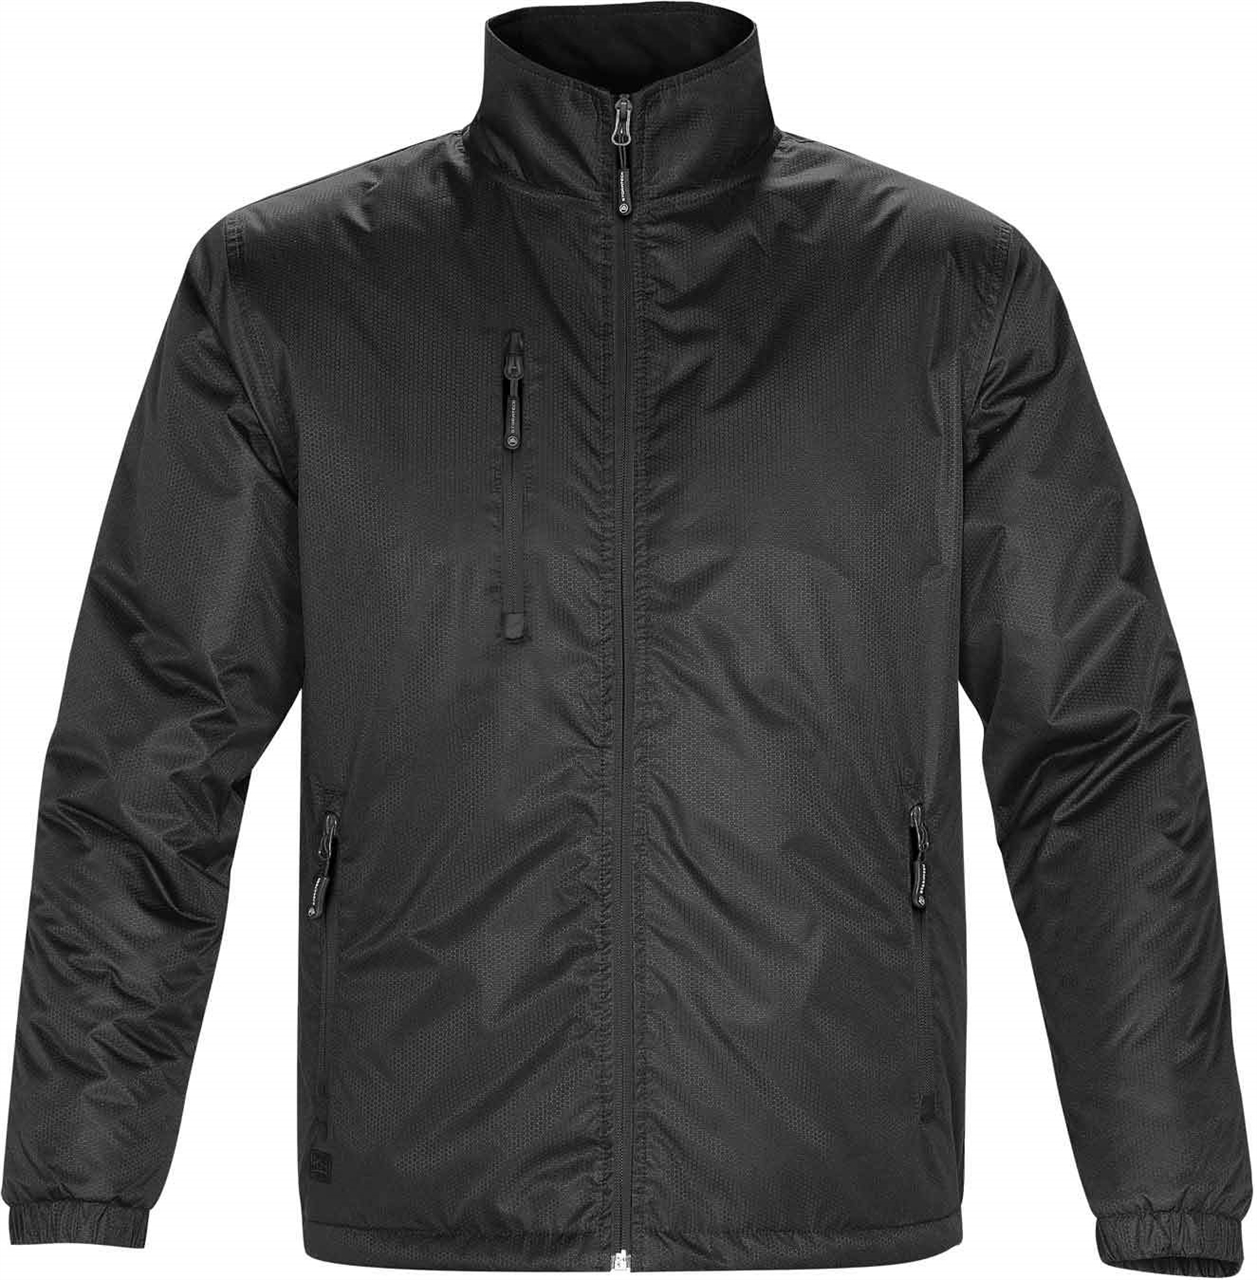 Picture of Stormtech Men's Axis Thermal Jacket